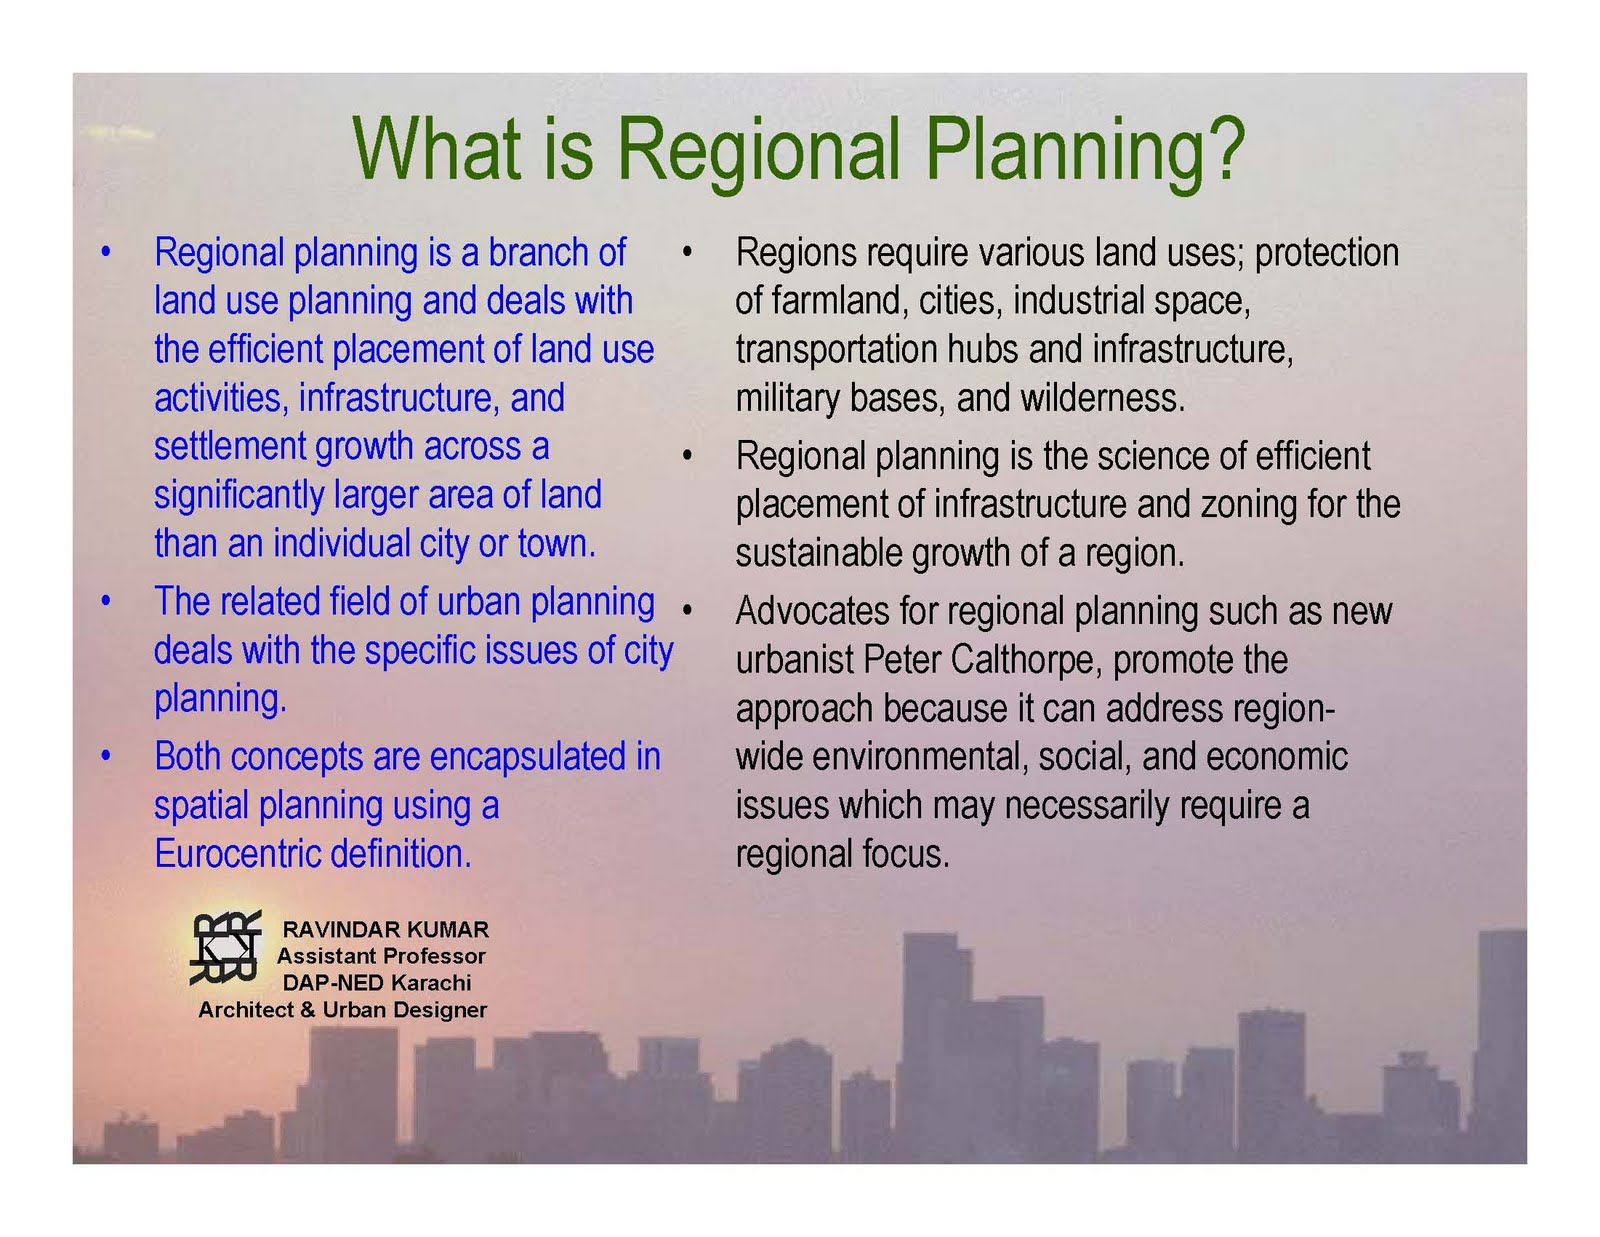 urban and regional planning The master's in urban & regional planning at georgetown prepares students to solve the critical challenges facing urban communities around the world.